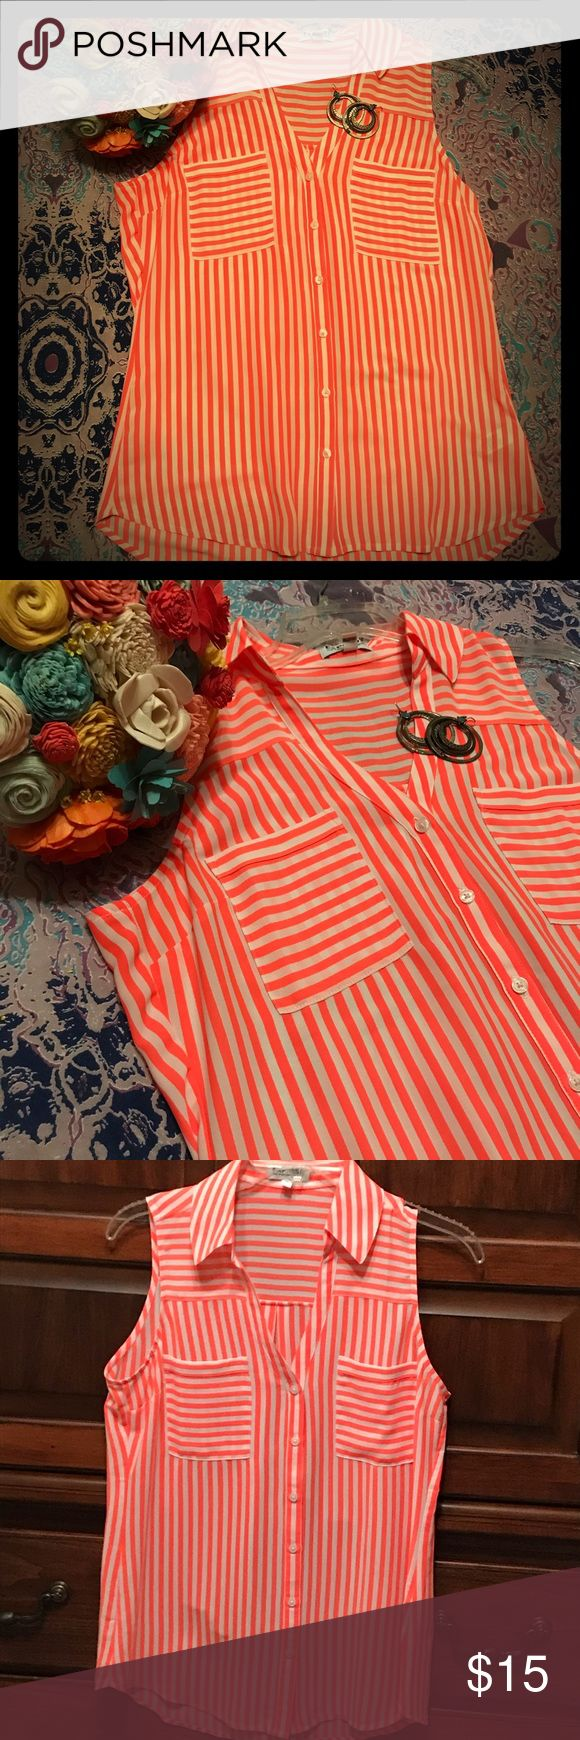 Bright orange and white collared tank top. Only worn once. Great colors for spring or summer. Collared, which makes it easy to dress casual or dressy. Chiffon in texture. Express Tops Blouses